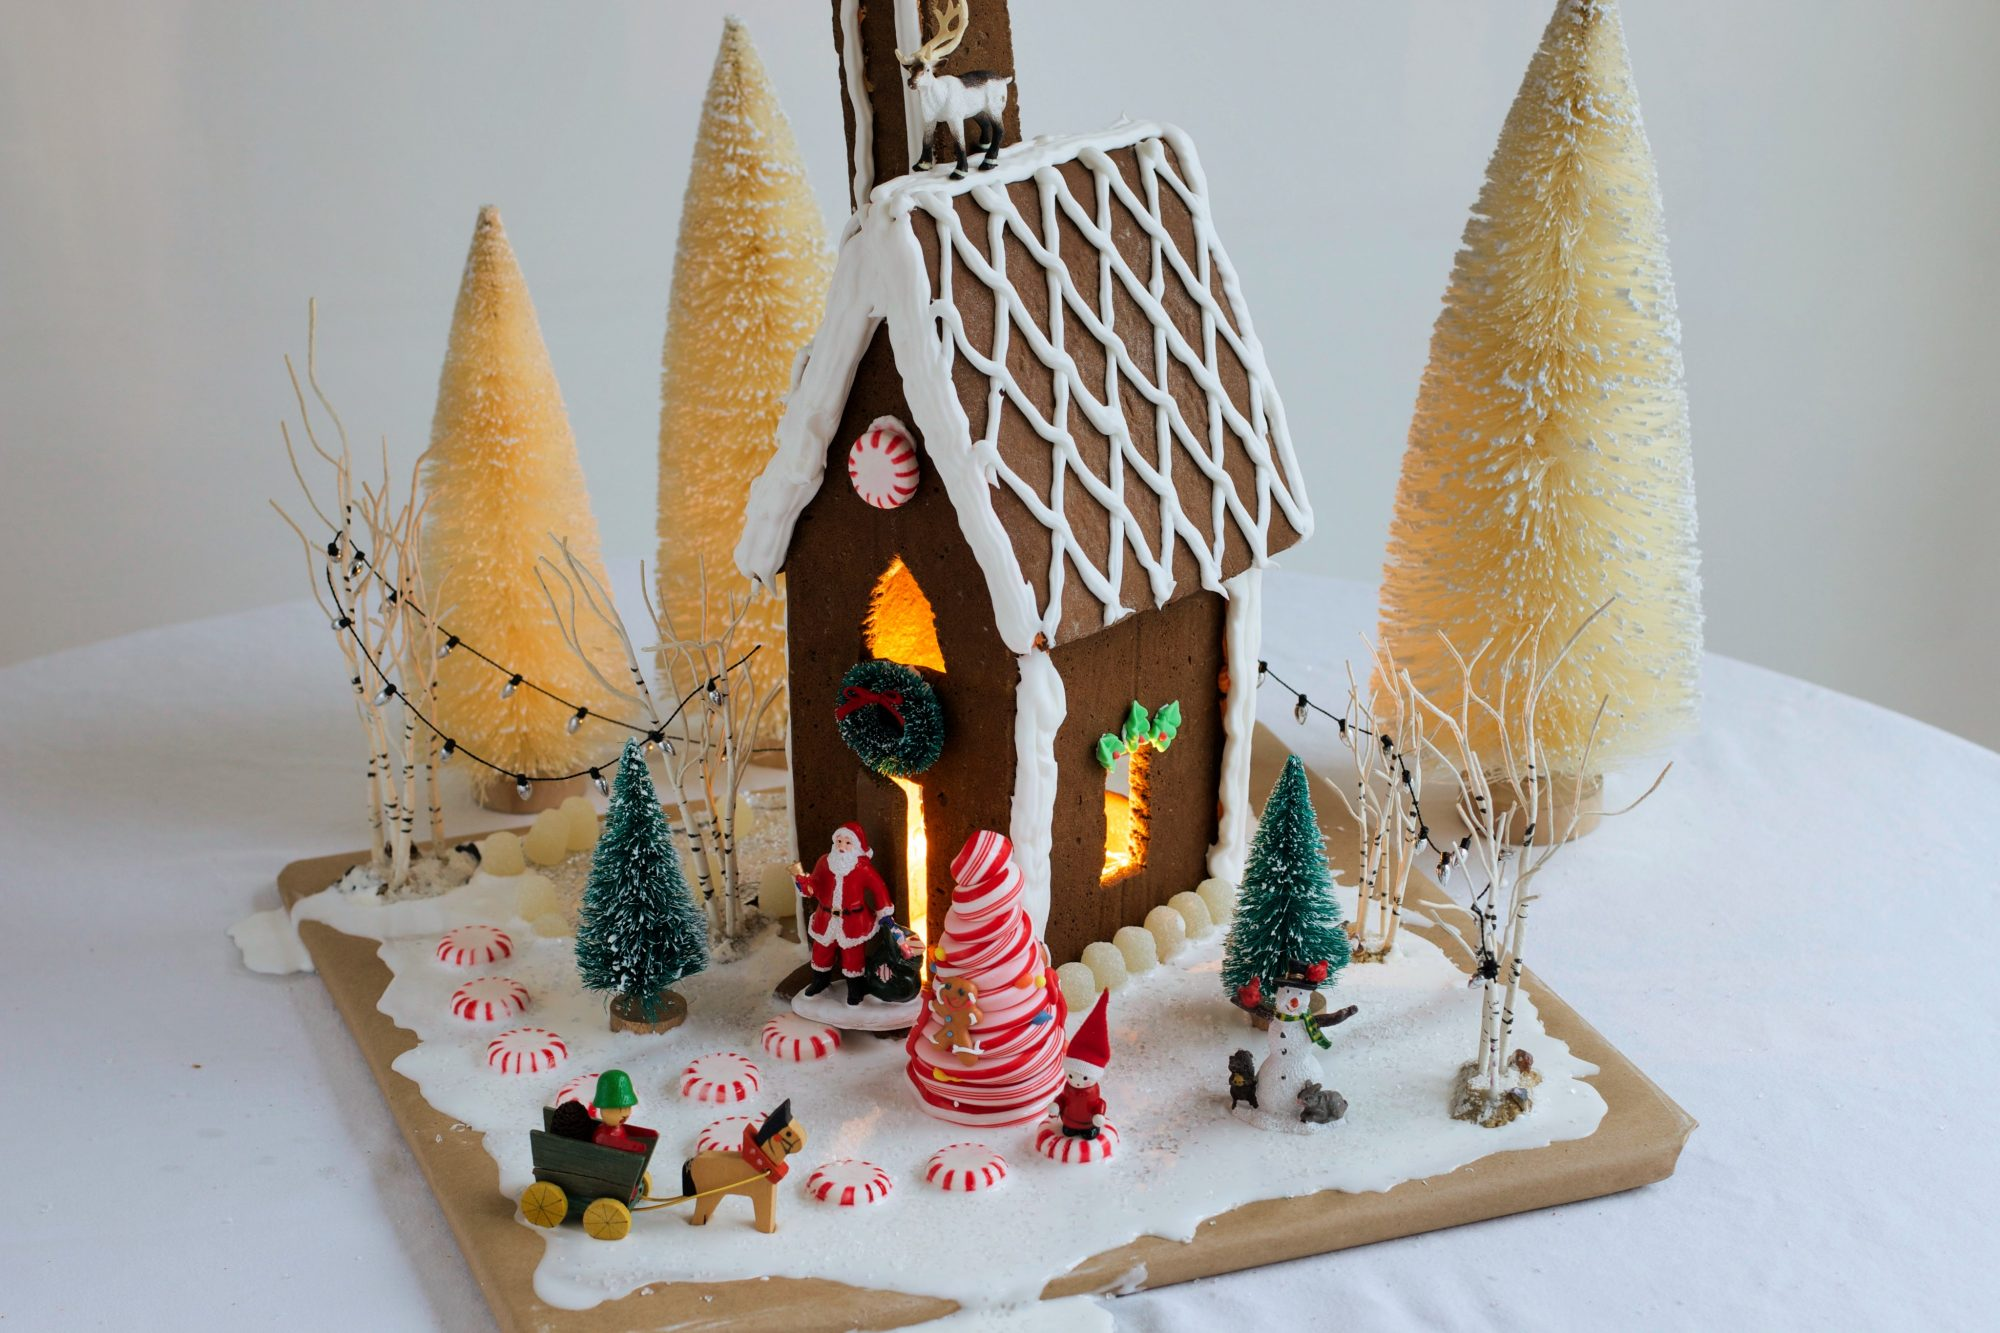 homemade gingerbread house decorated for christmas with candy, toys, and lights